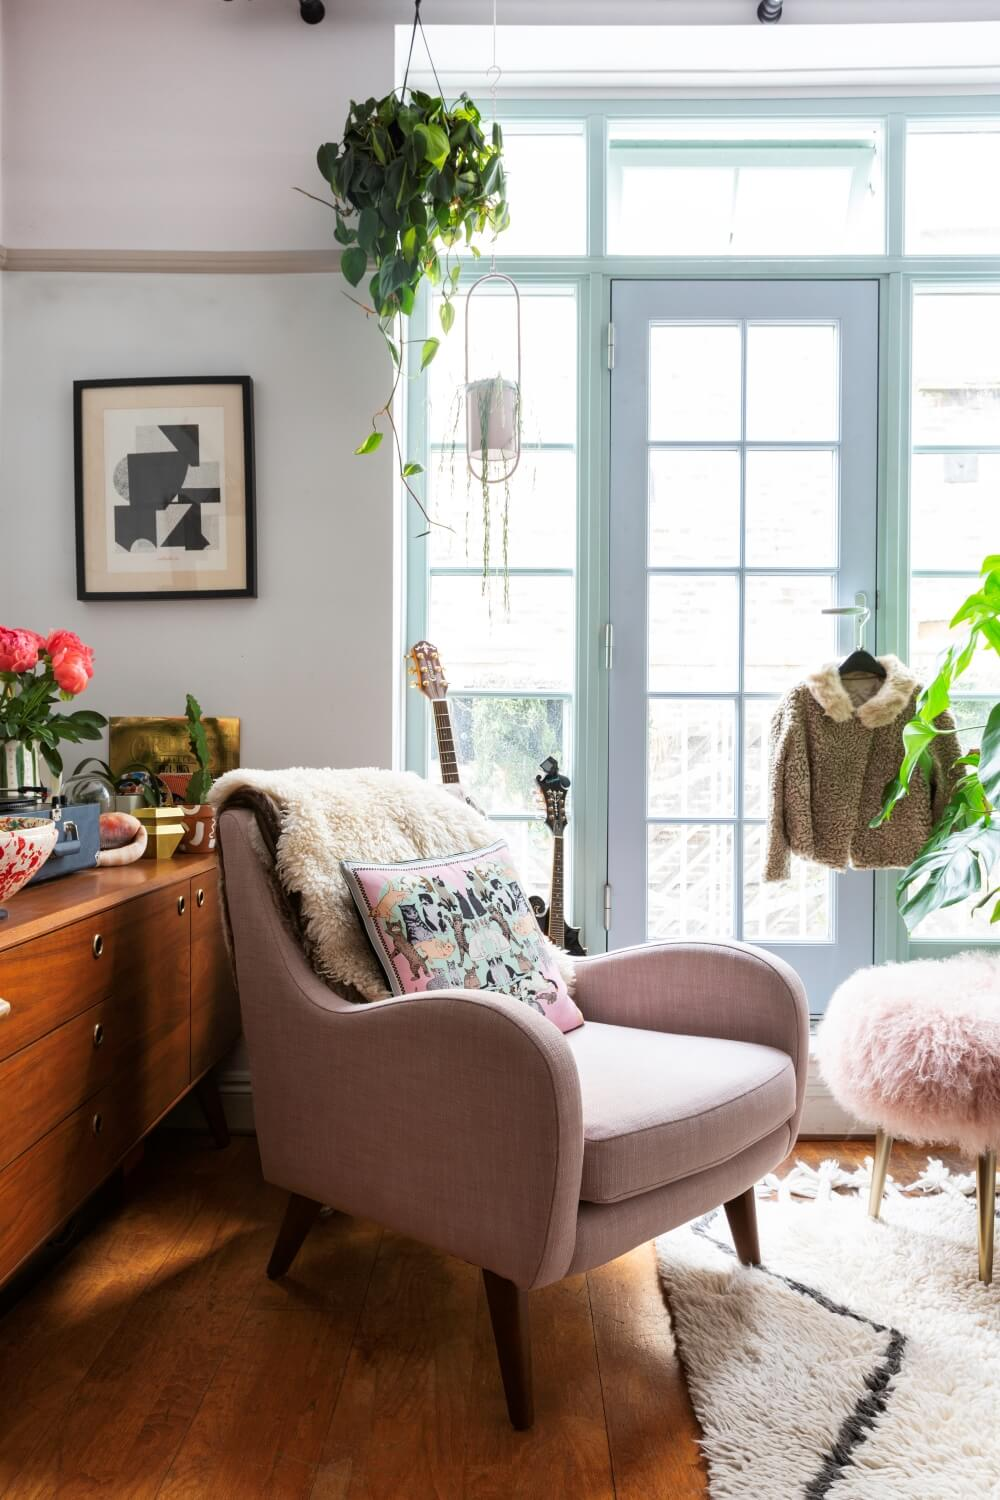 pink arm chair in front of large pale blue windows in listed property. Indoor plants suspended from curtain rails